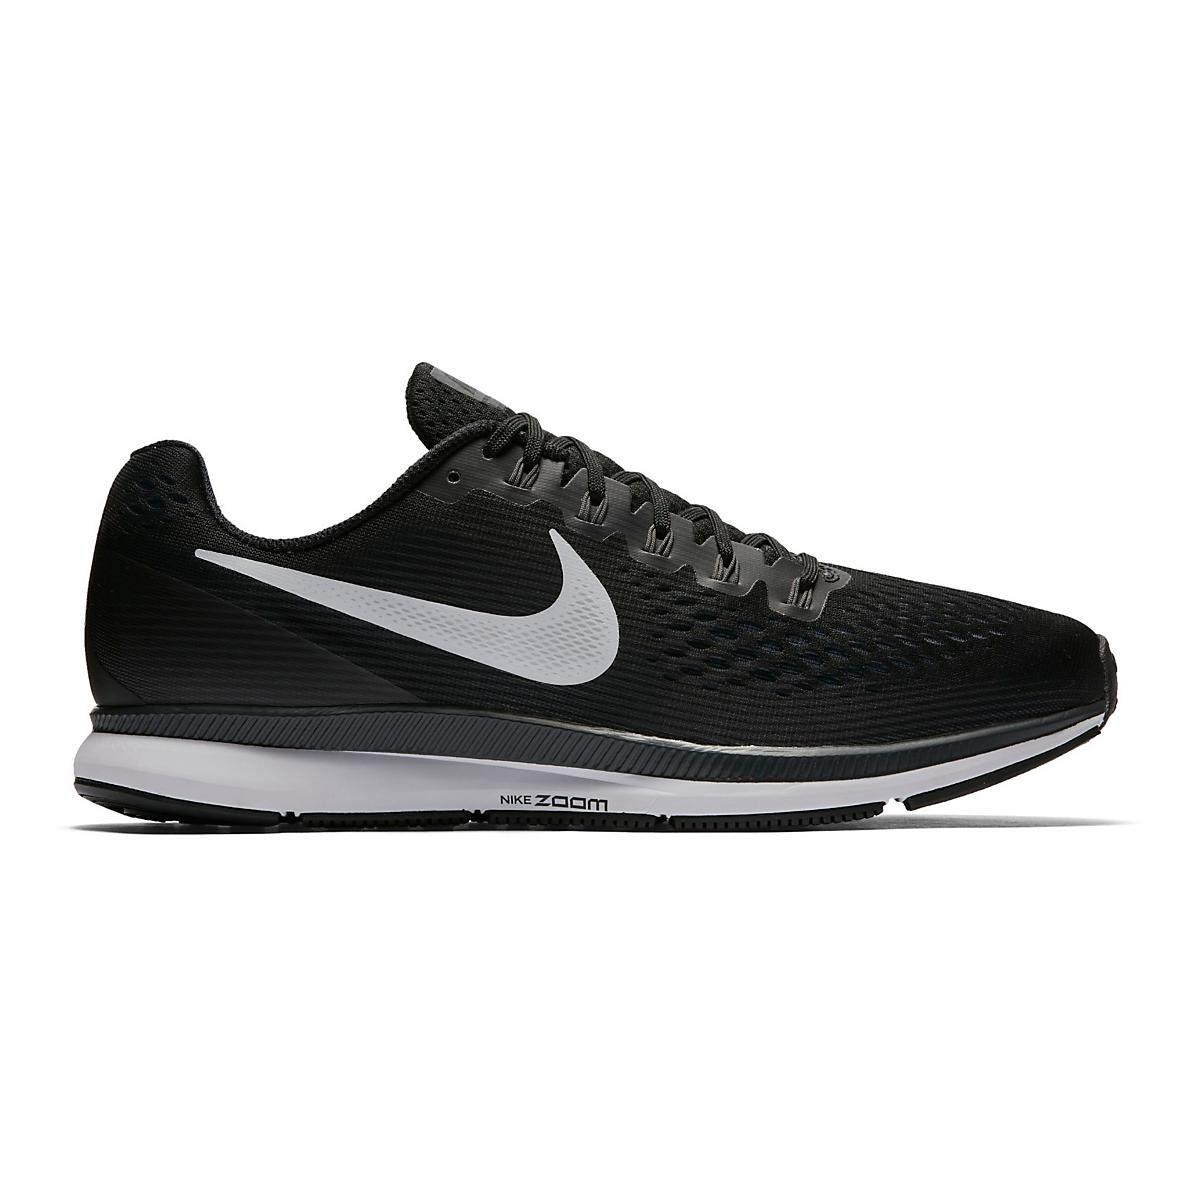 5fa535ca238c0 Nike Air Zoom Pegasus 34 Men s Running Shoes